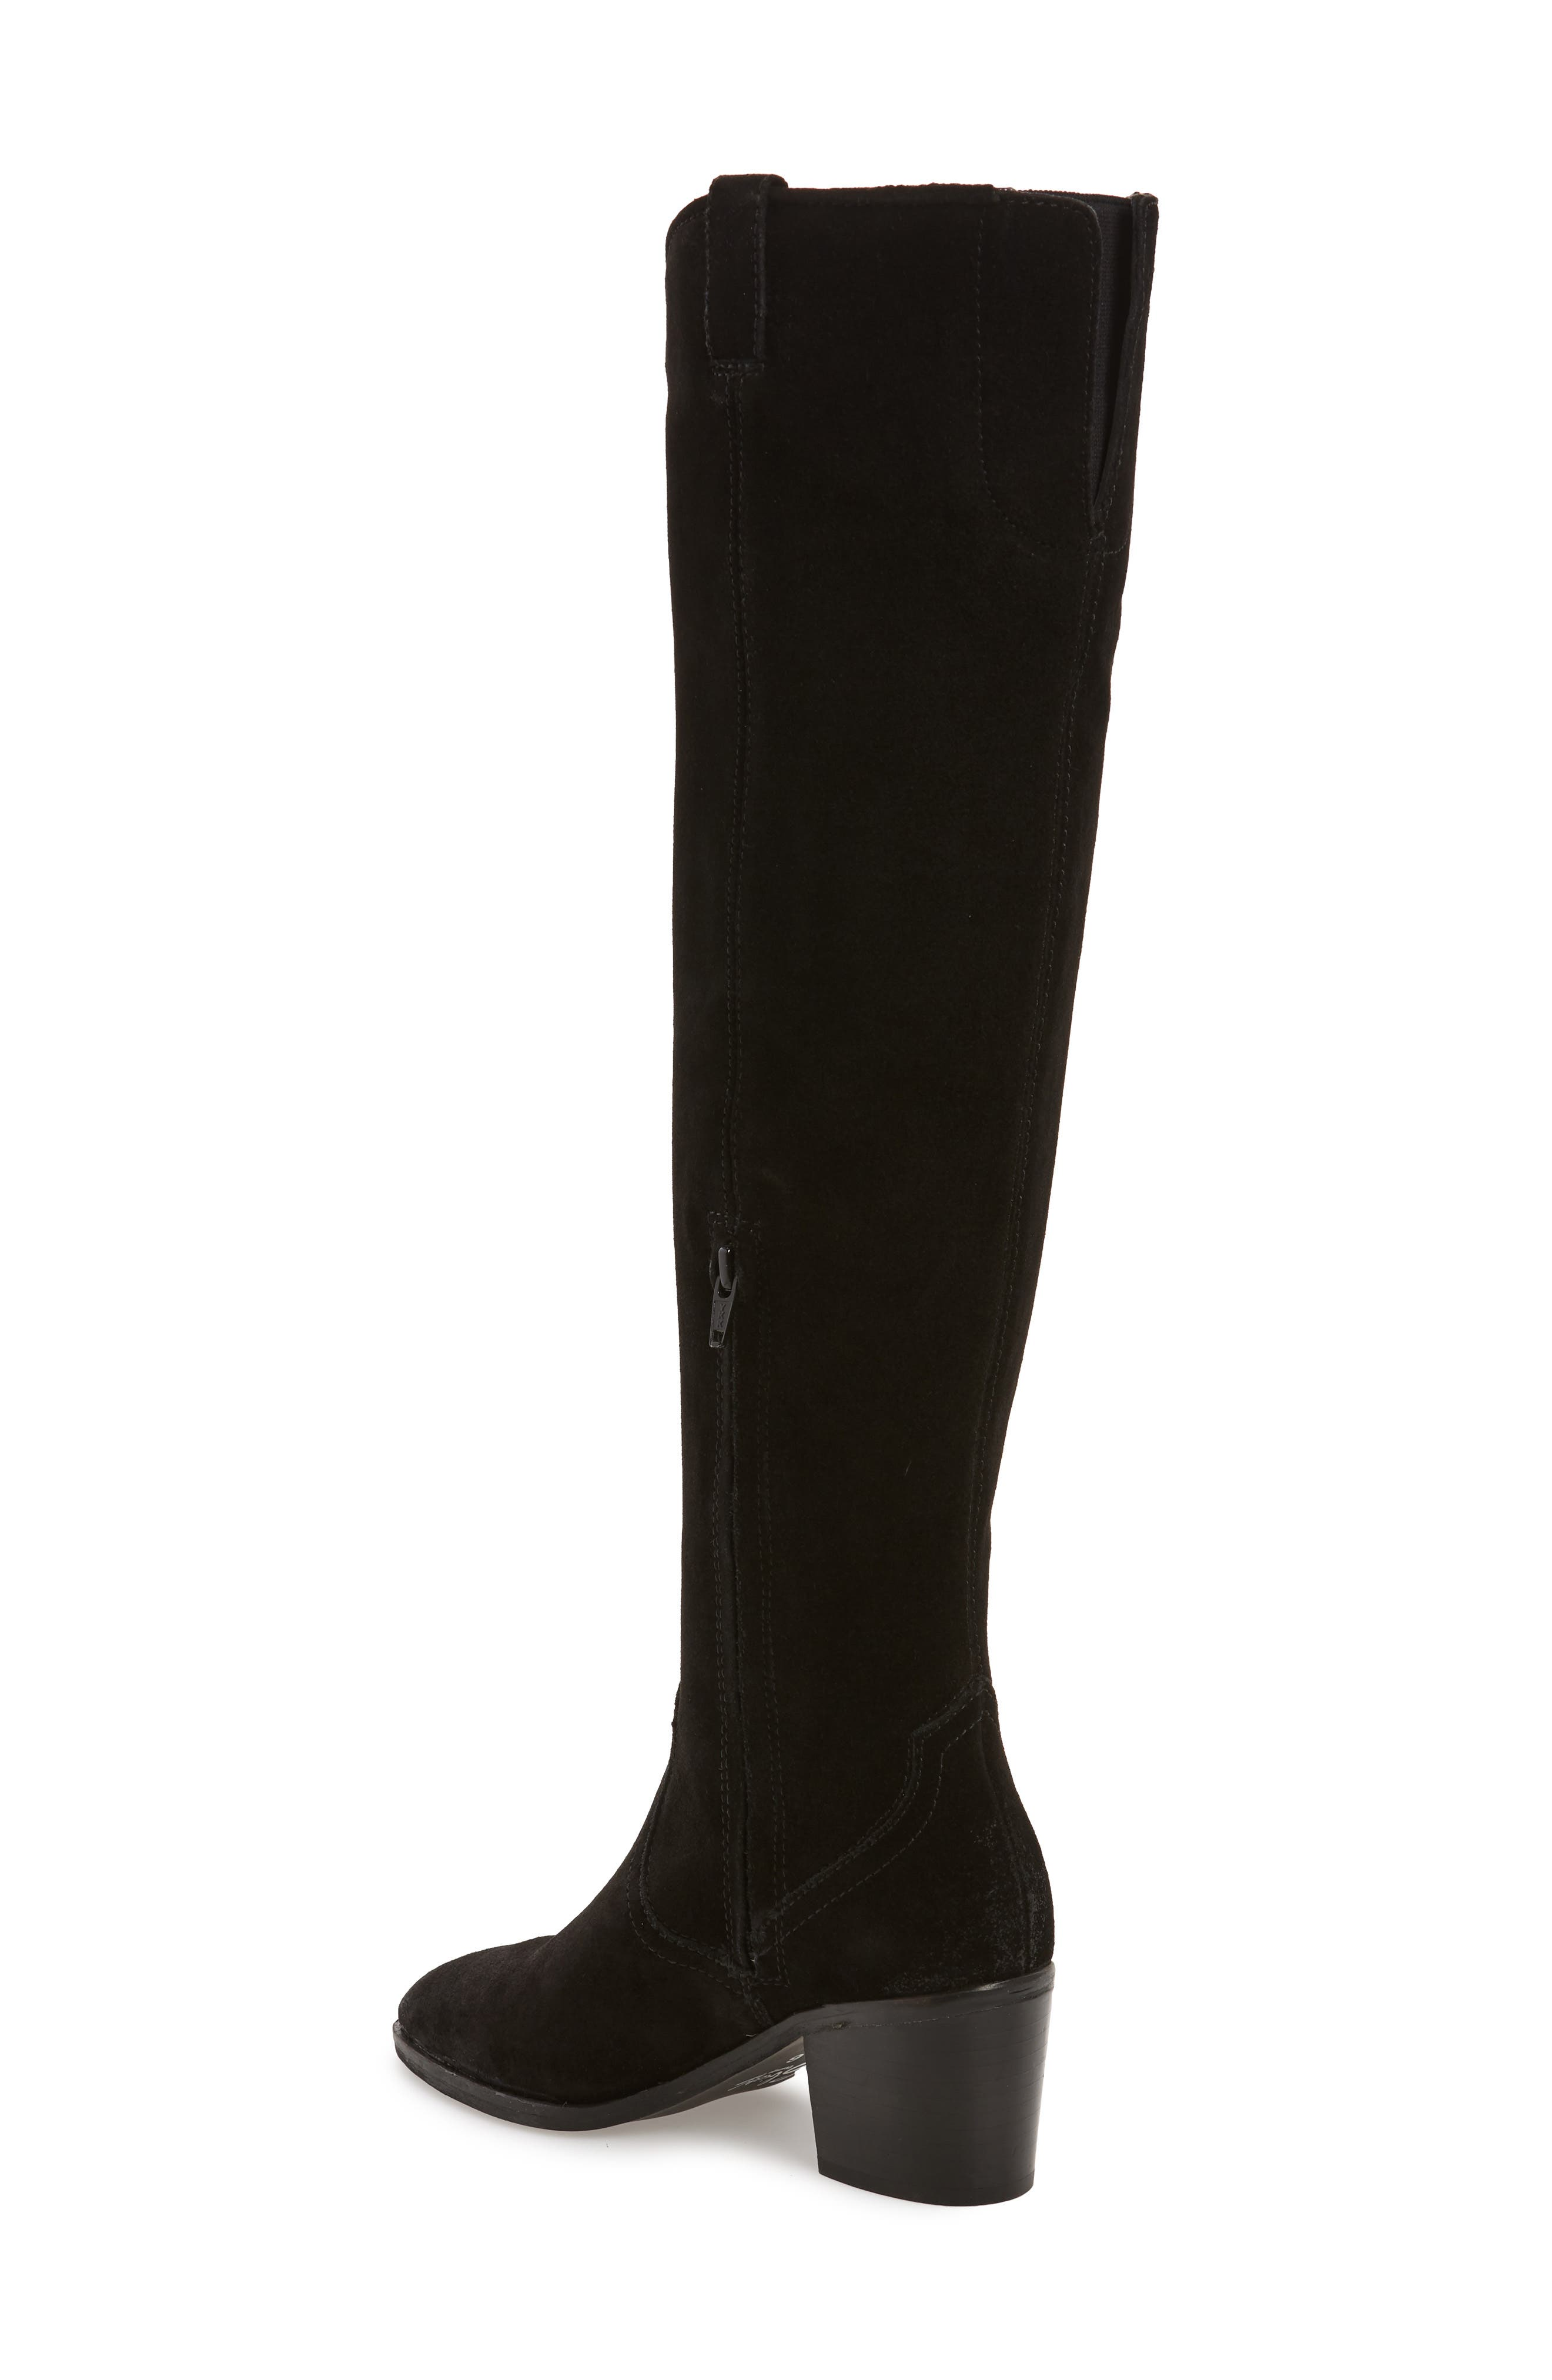 Delano Over the Knee Boot,                             Alternate thumbnail 2, color,                             BLACK LEATHER